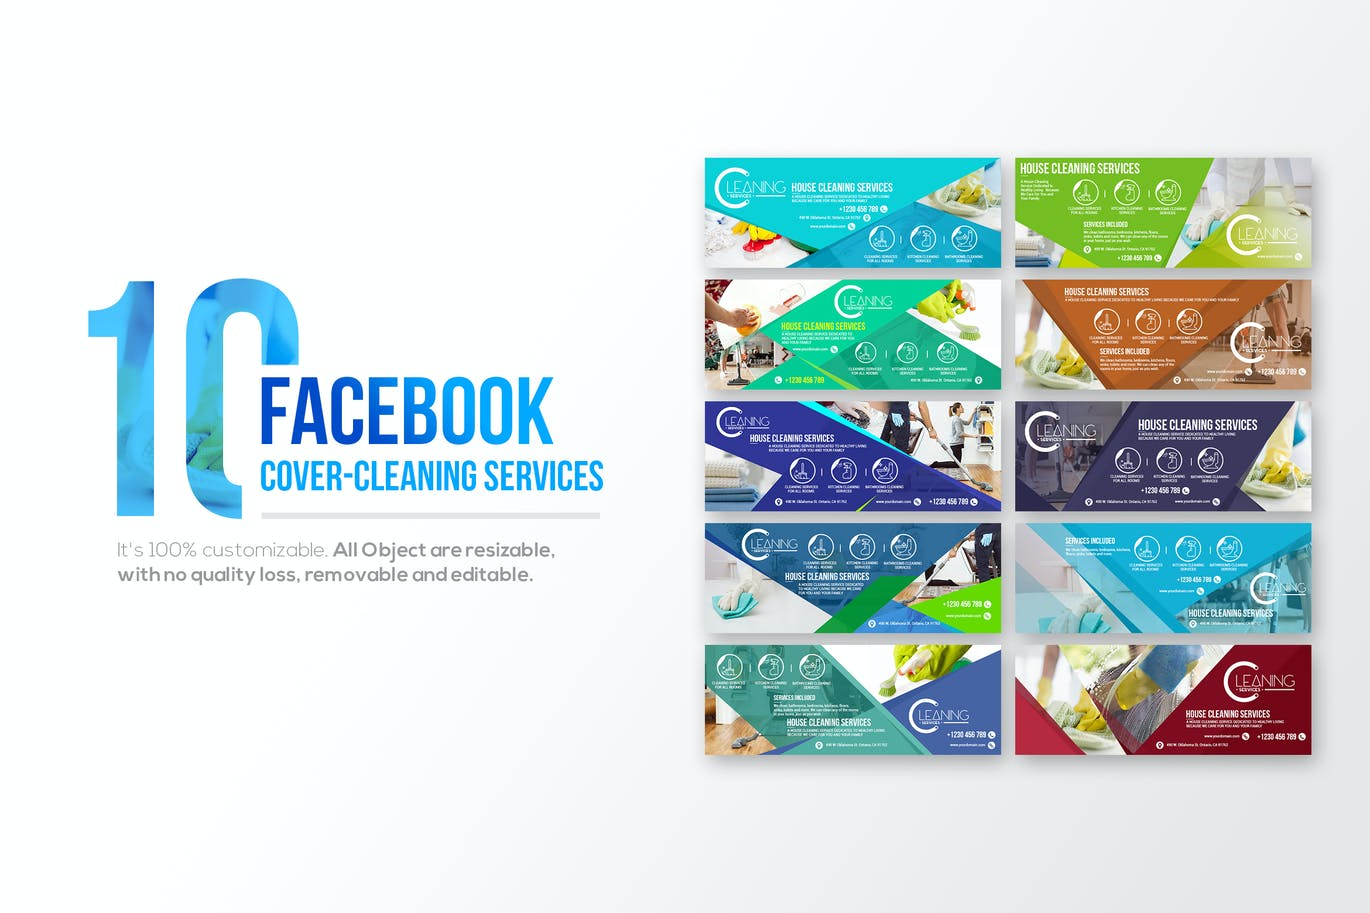 10 facebook cover cleaning service by wutip on envato elements 10 facebook cover cleaning service